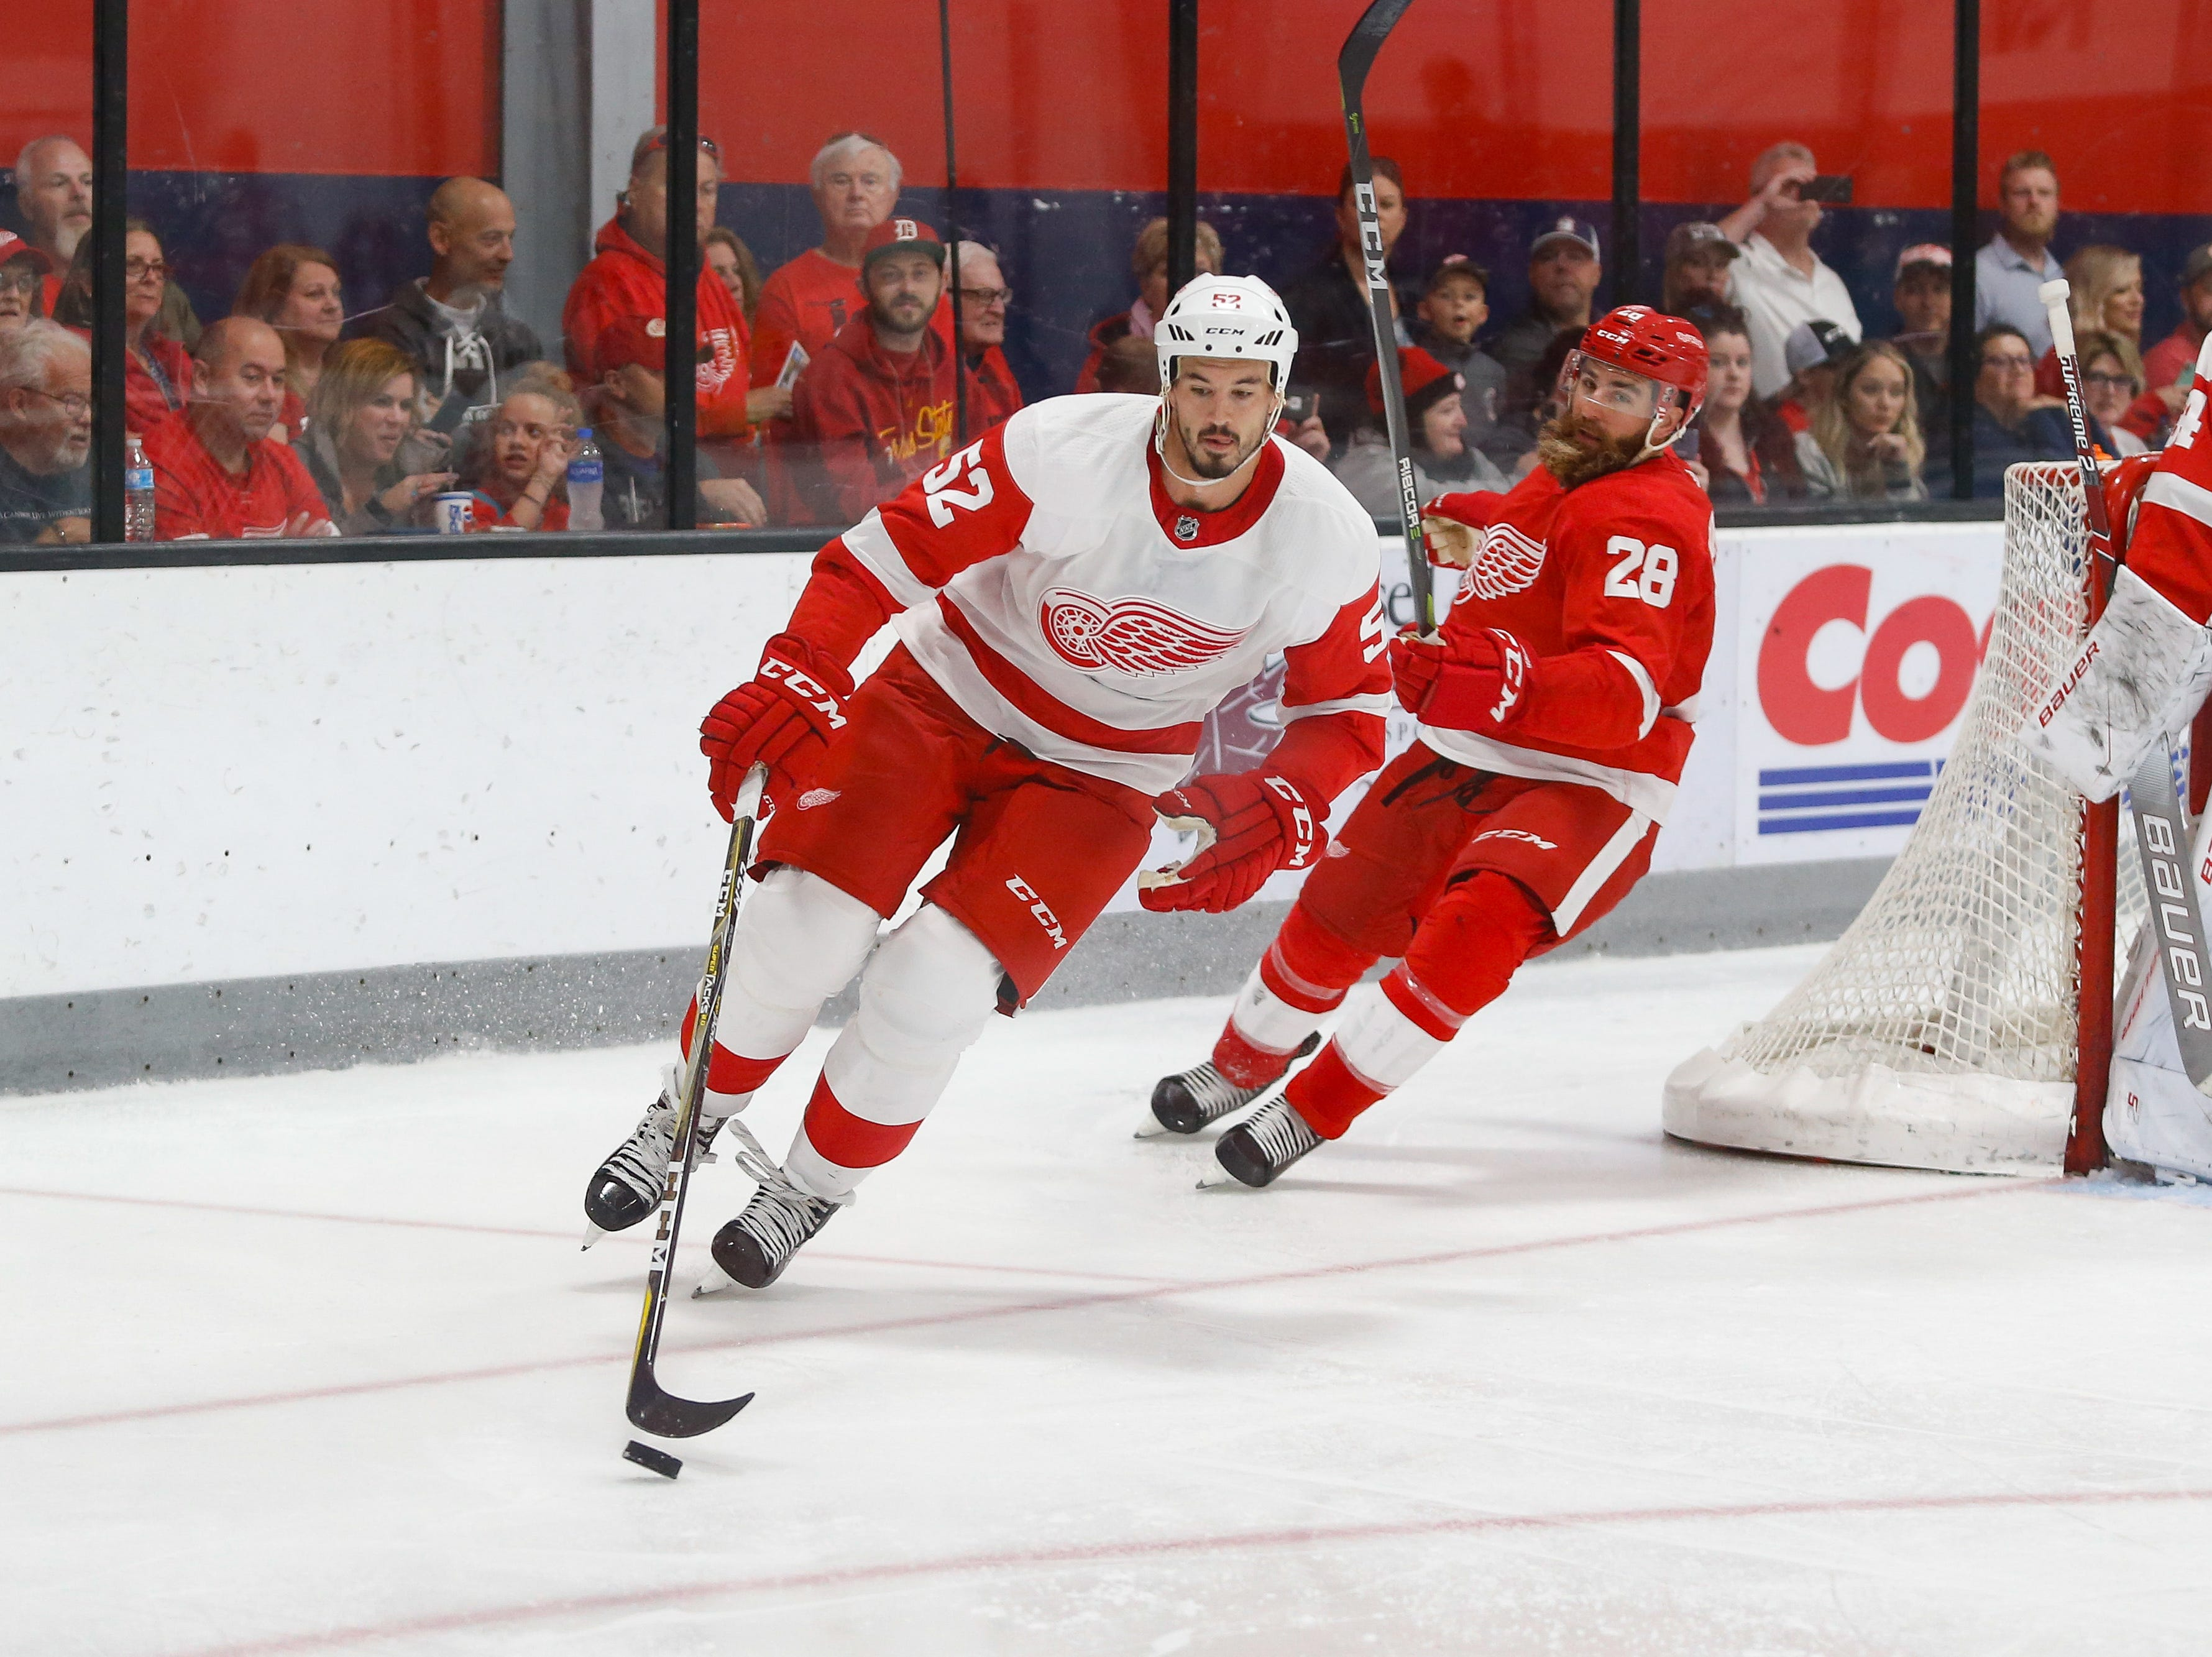 Jonathan Ericsson wheels behind the net with the puck and with Luke Witkowski giving chase.